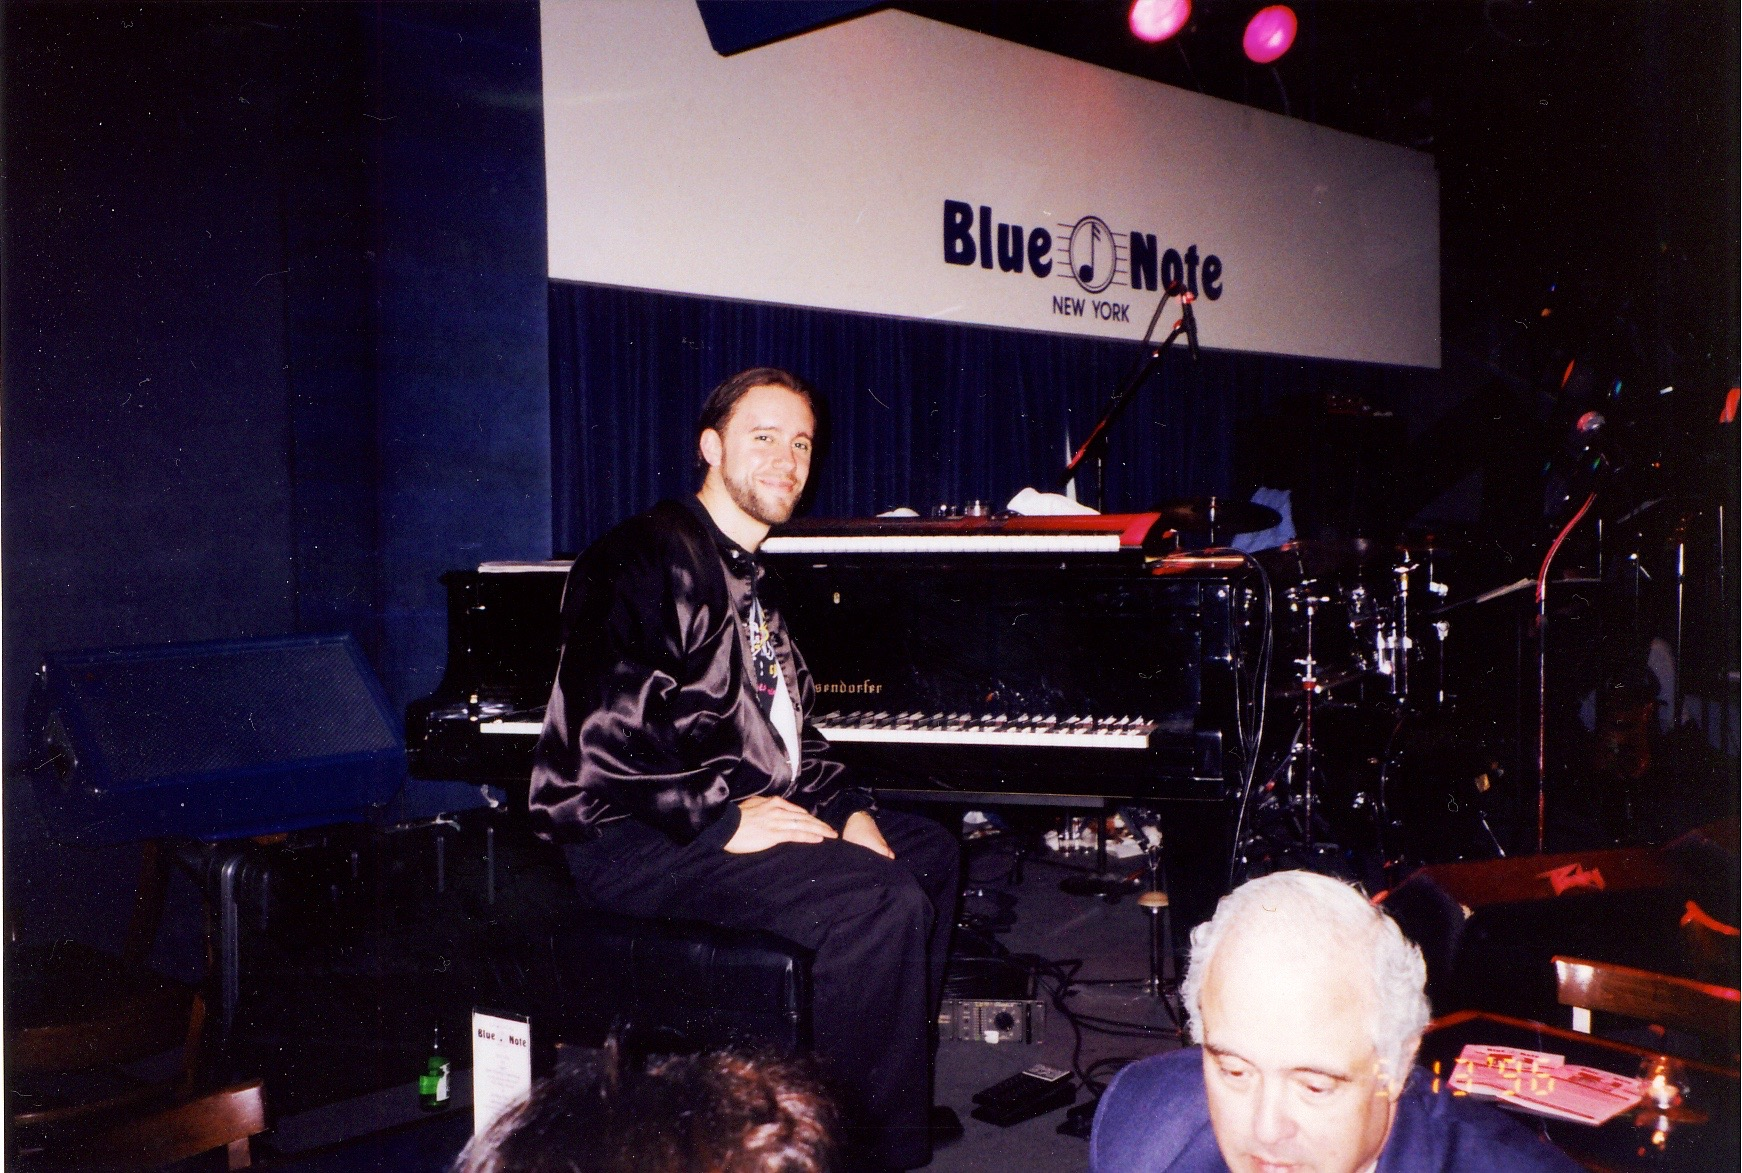 Blue Note NYC